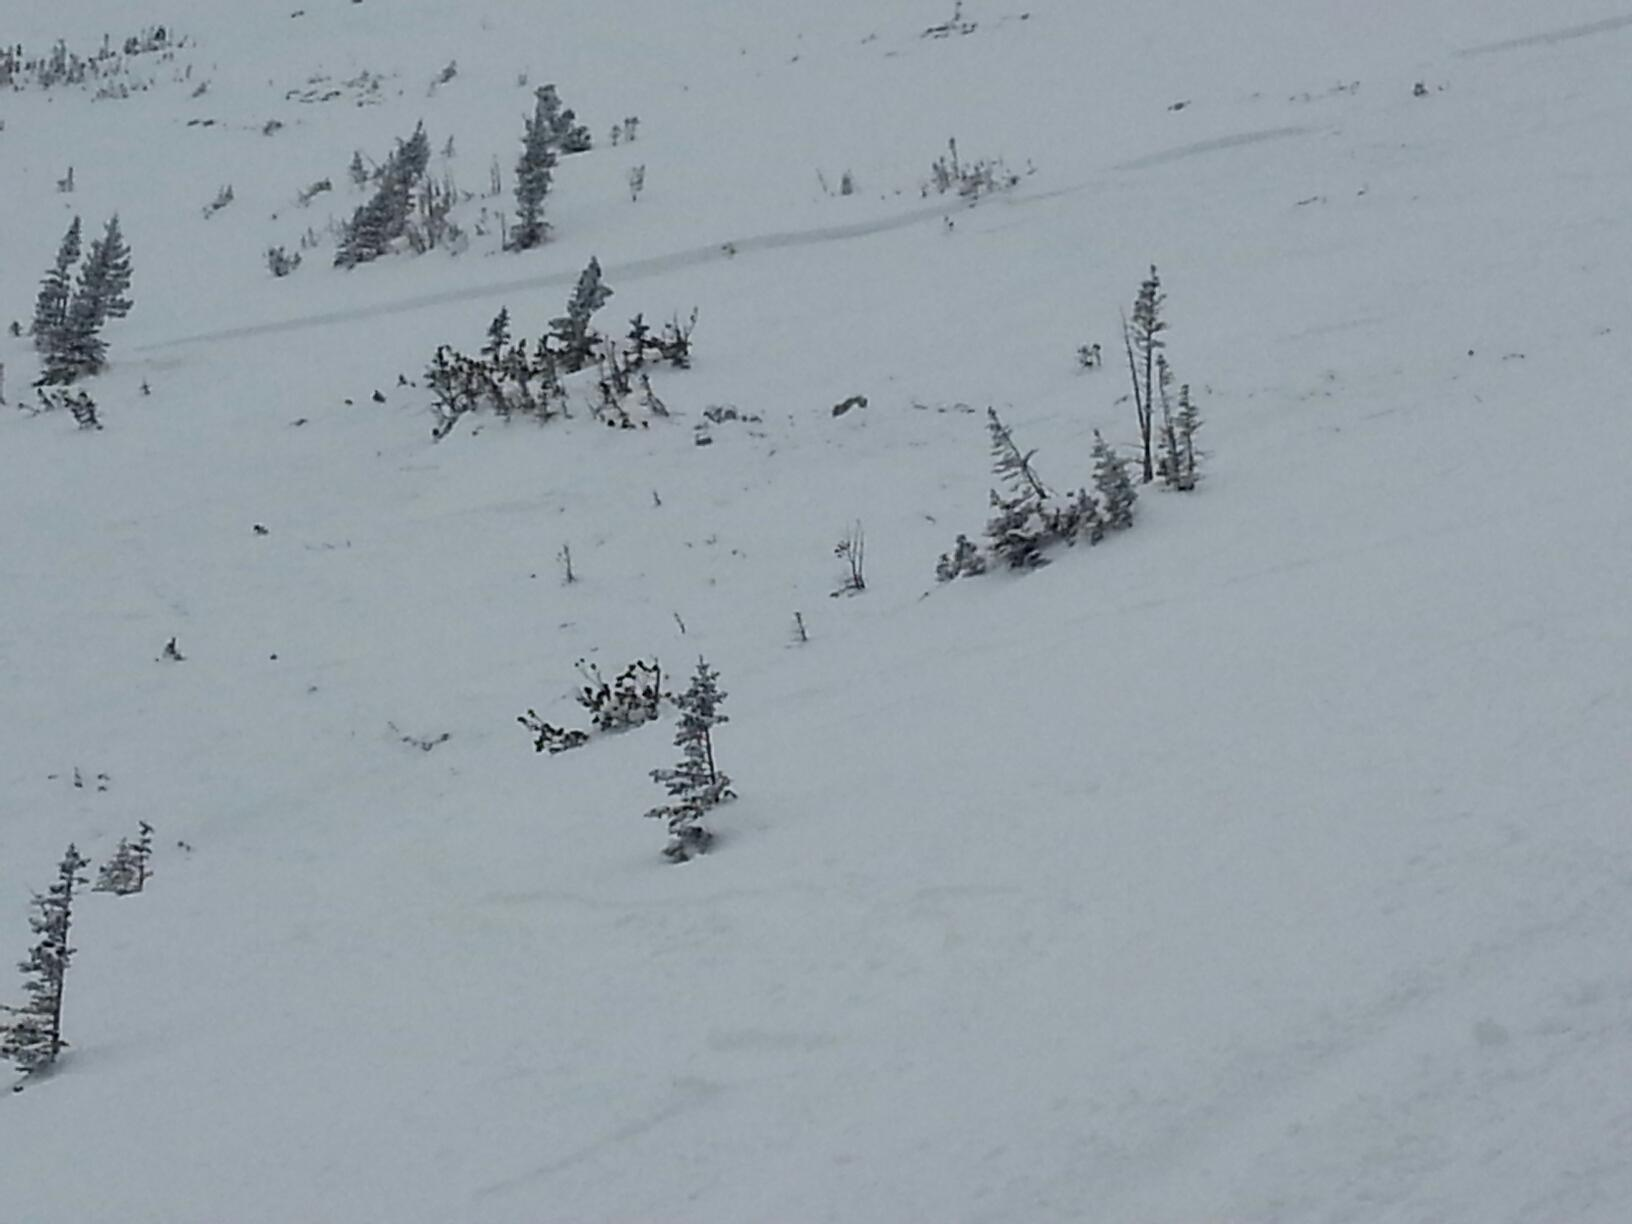 Football field avalanche 1-2016